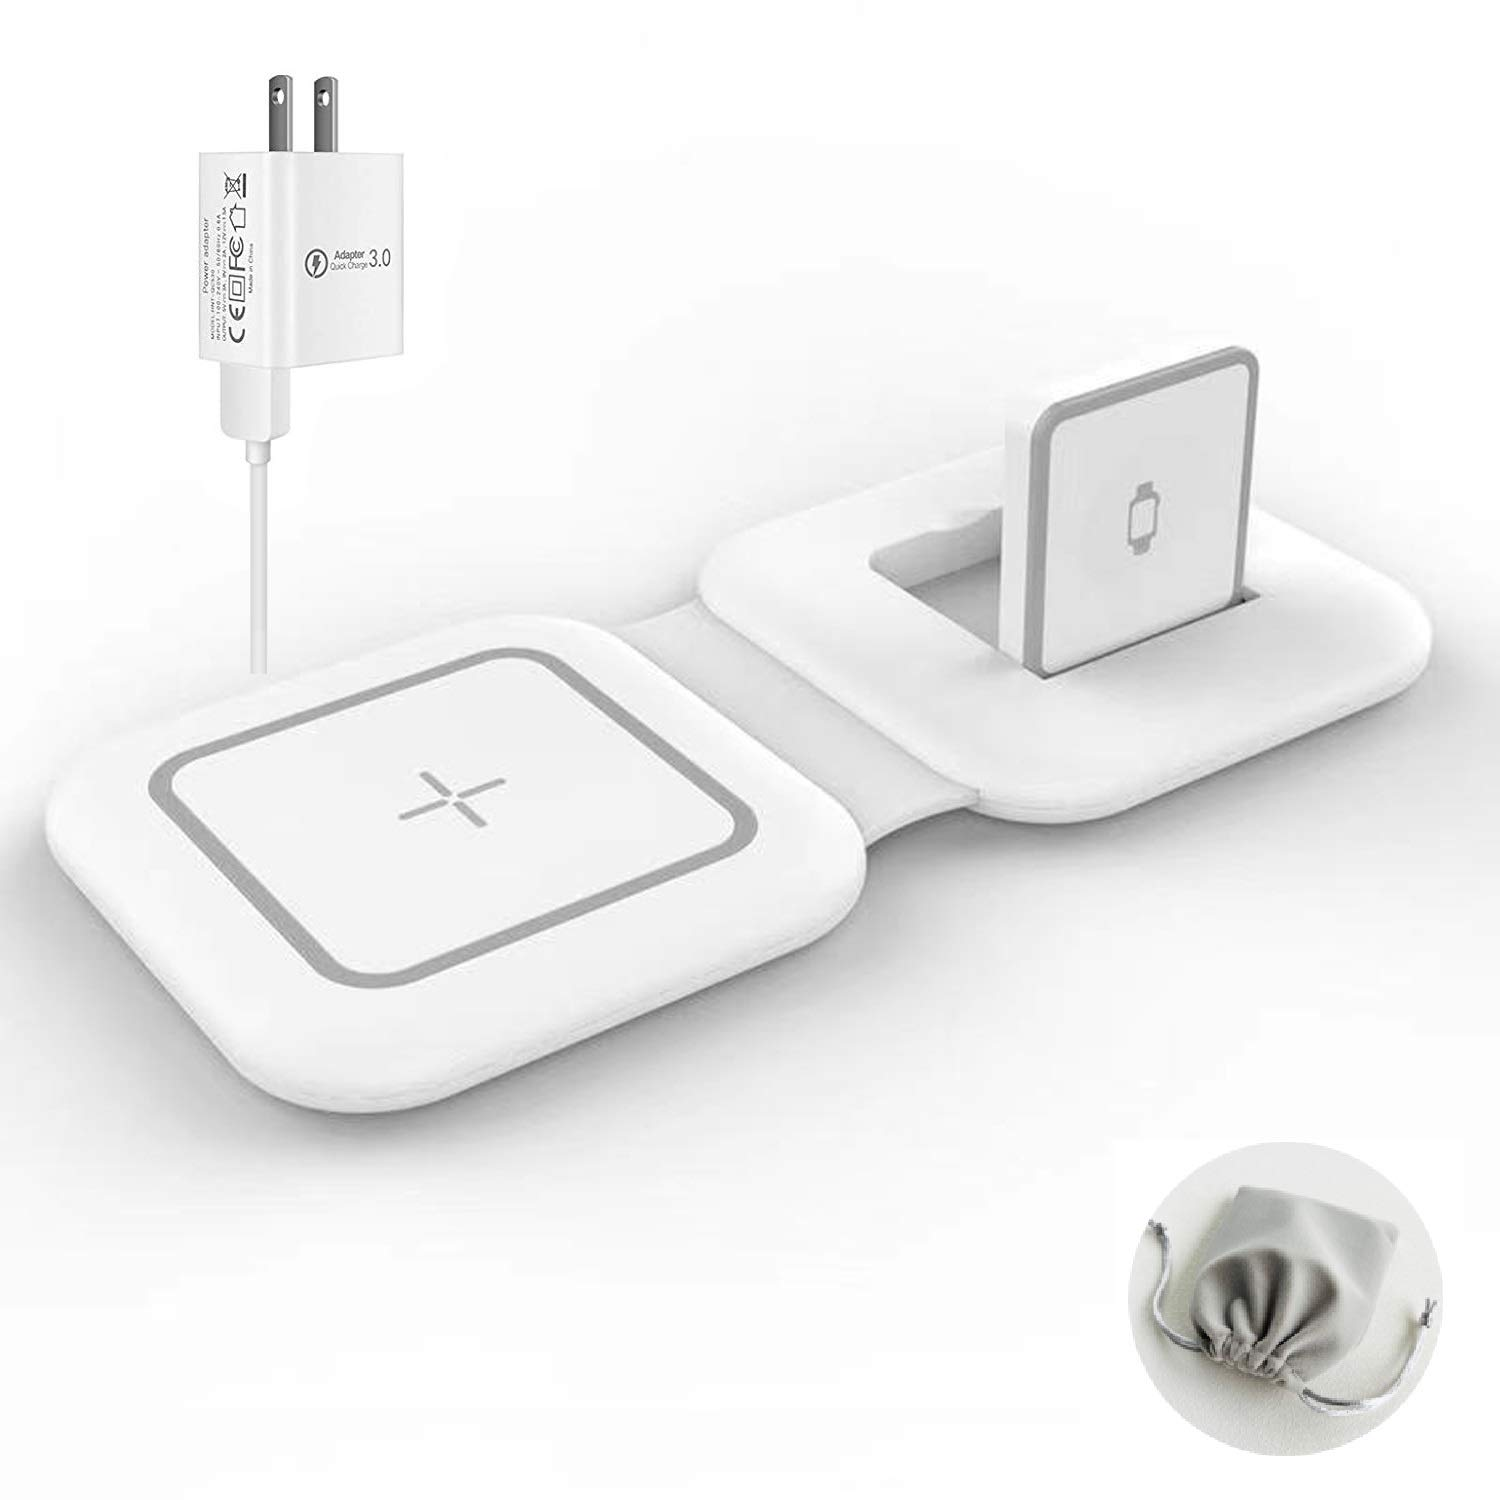 NURMUN 2 in 1 Magnetic Wireless Charger Compatible for iPhone 12/Mini/Pro/Pro max and Air-Pods 2/pro/iWatch【with 18W QC Adapter】 Foldable Fast Charging Pad for iPhone magsaf-e Charger Other QI Phone